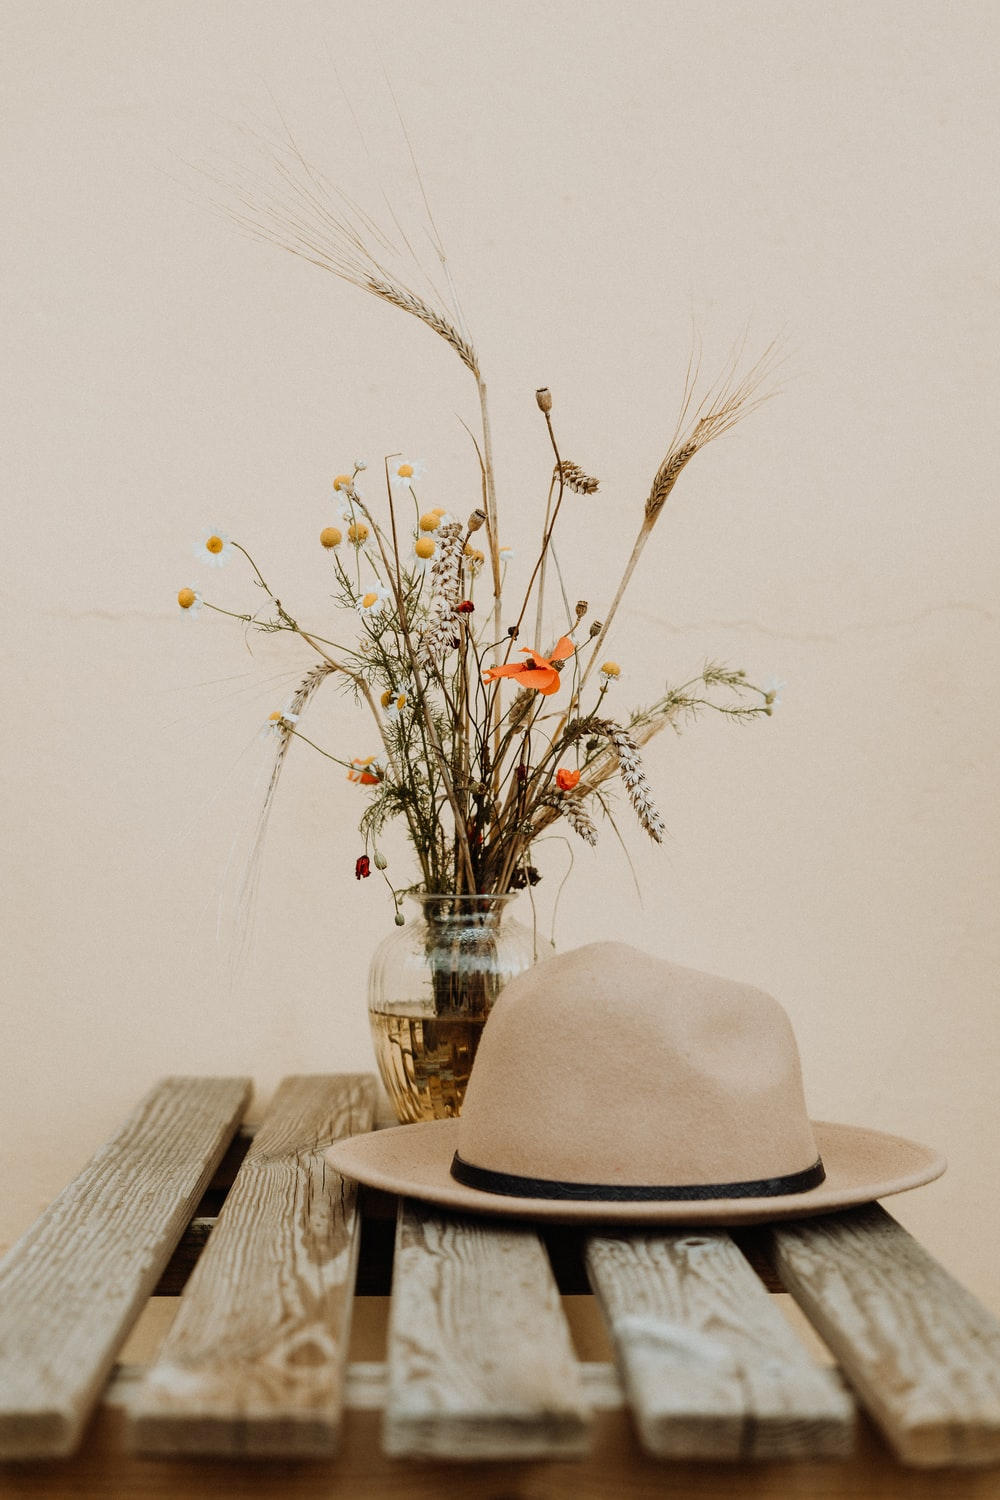 brown hat on wooden table beside flower in vase